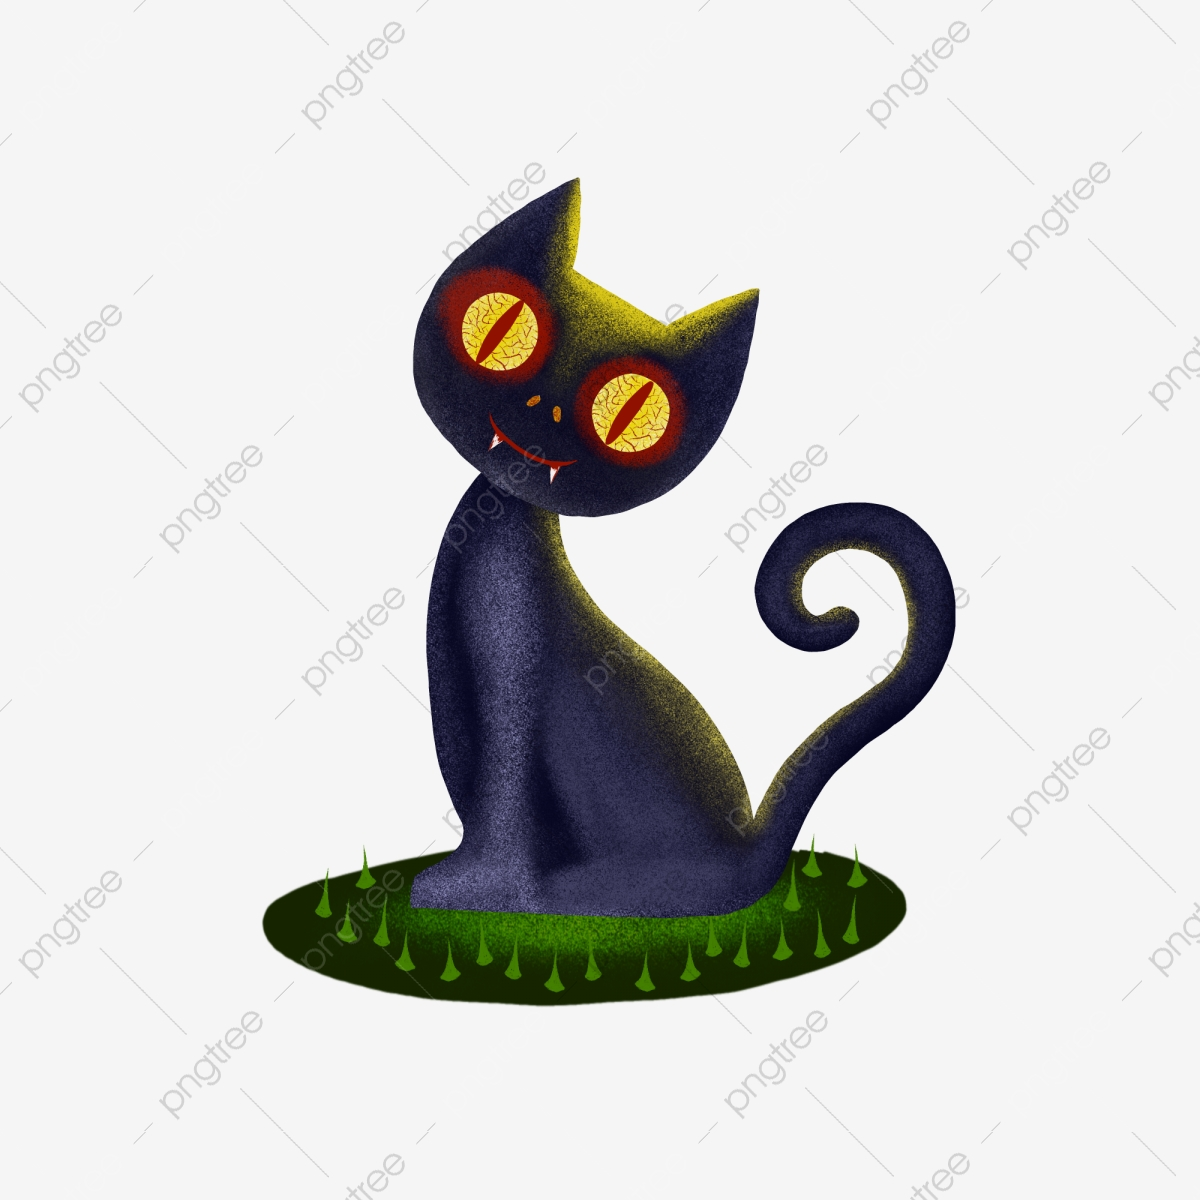 Halloween Evil Black Cat Stay Cute Cat Bloody Horror, Scary